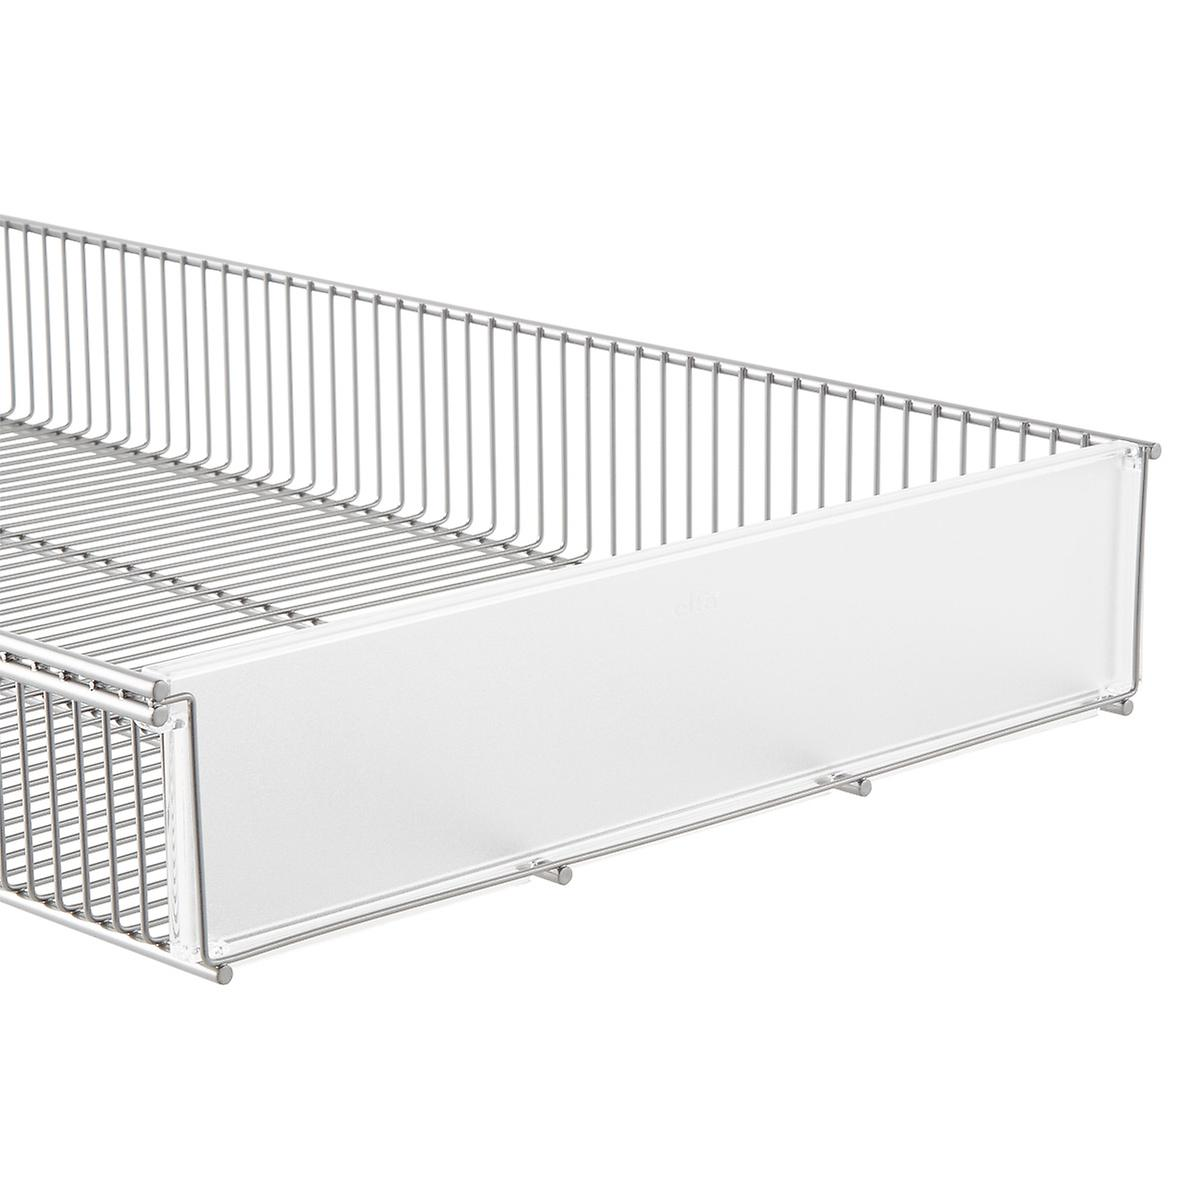 Clear elfa Shelf Basket Dividers